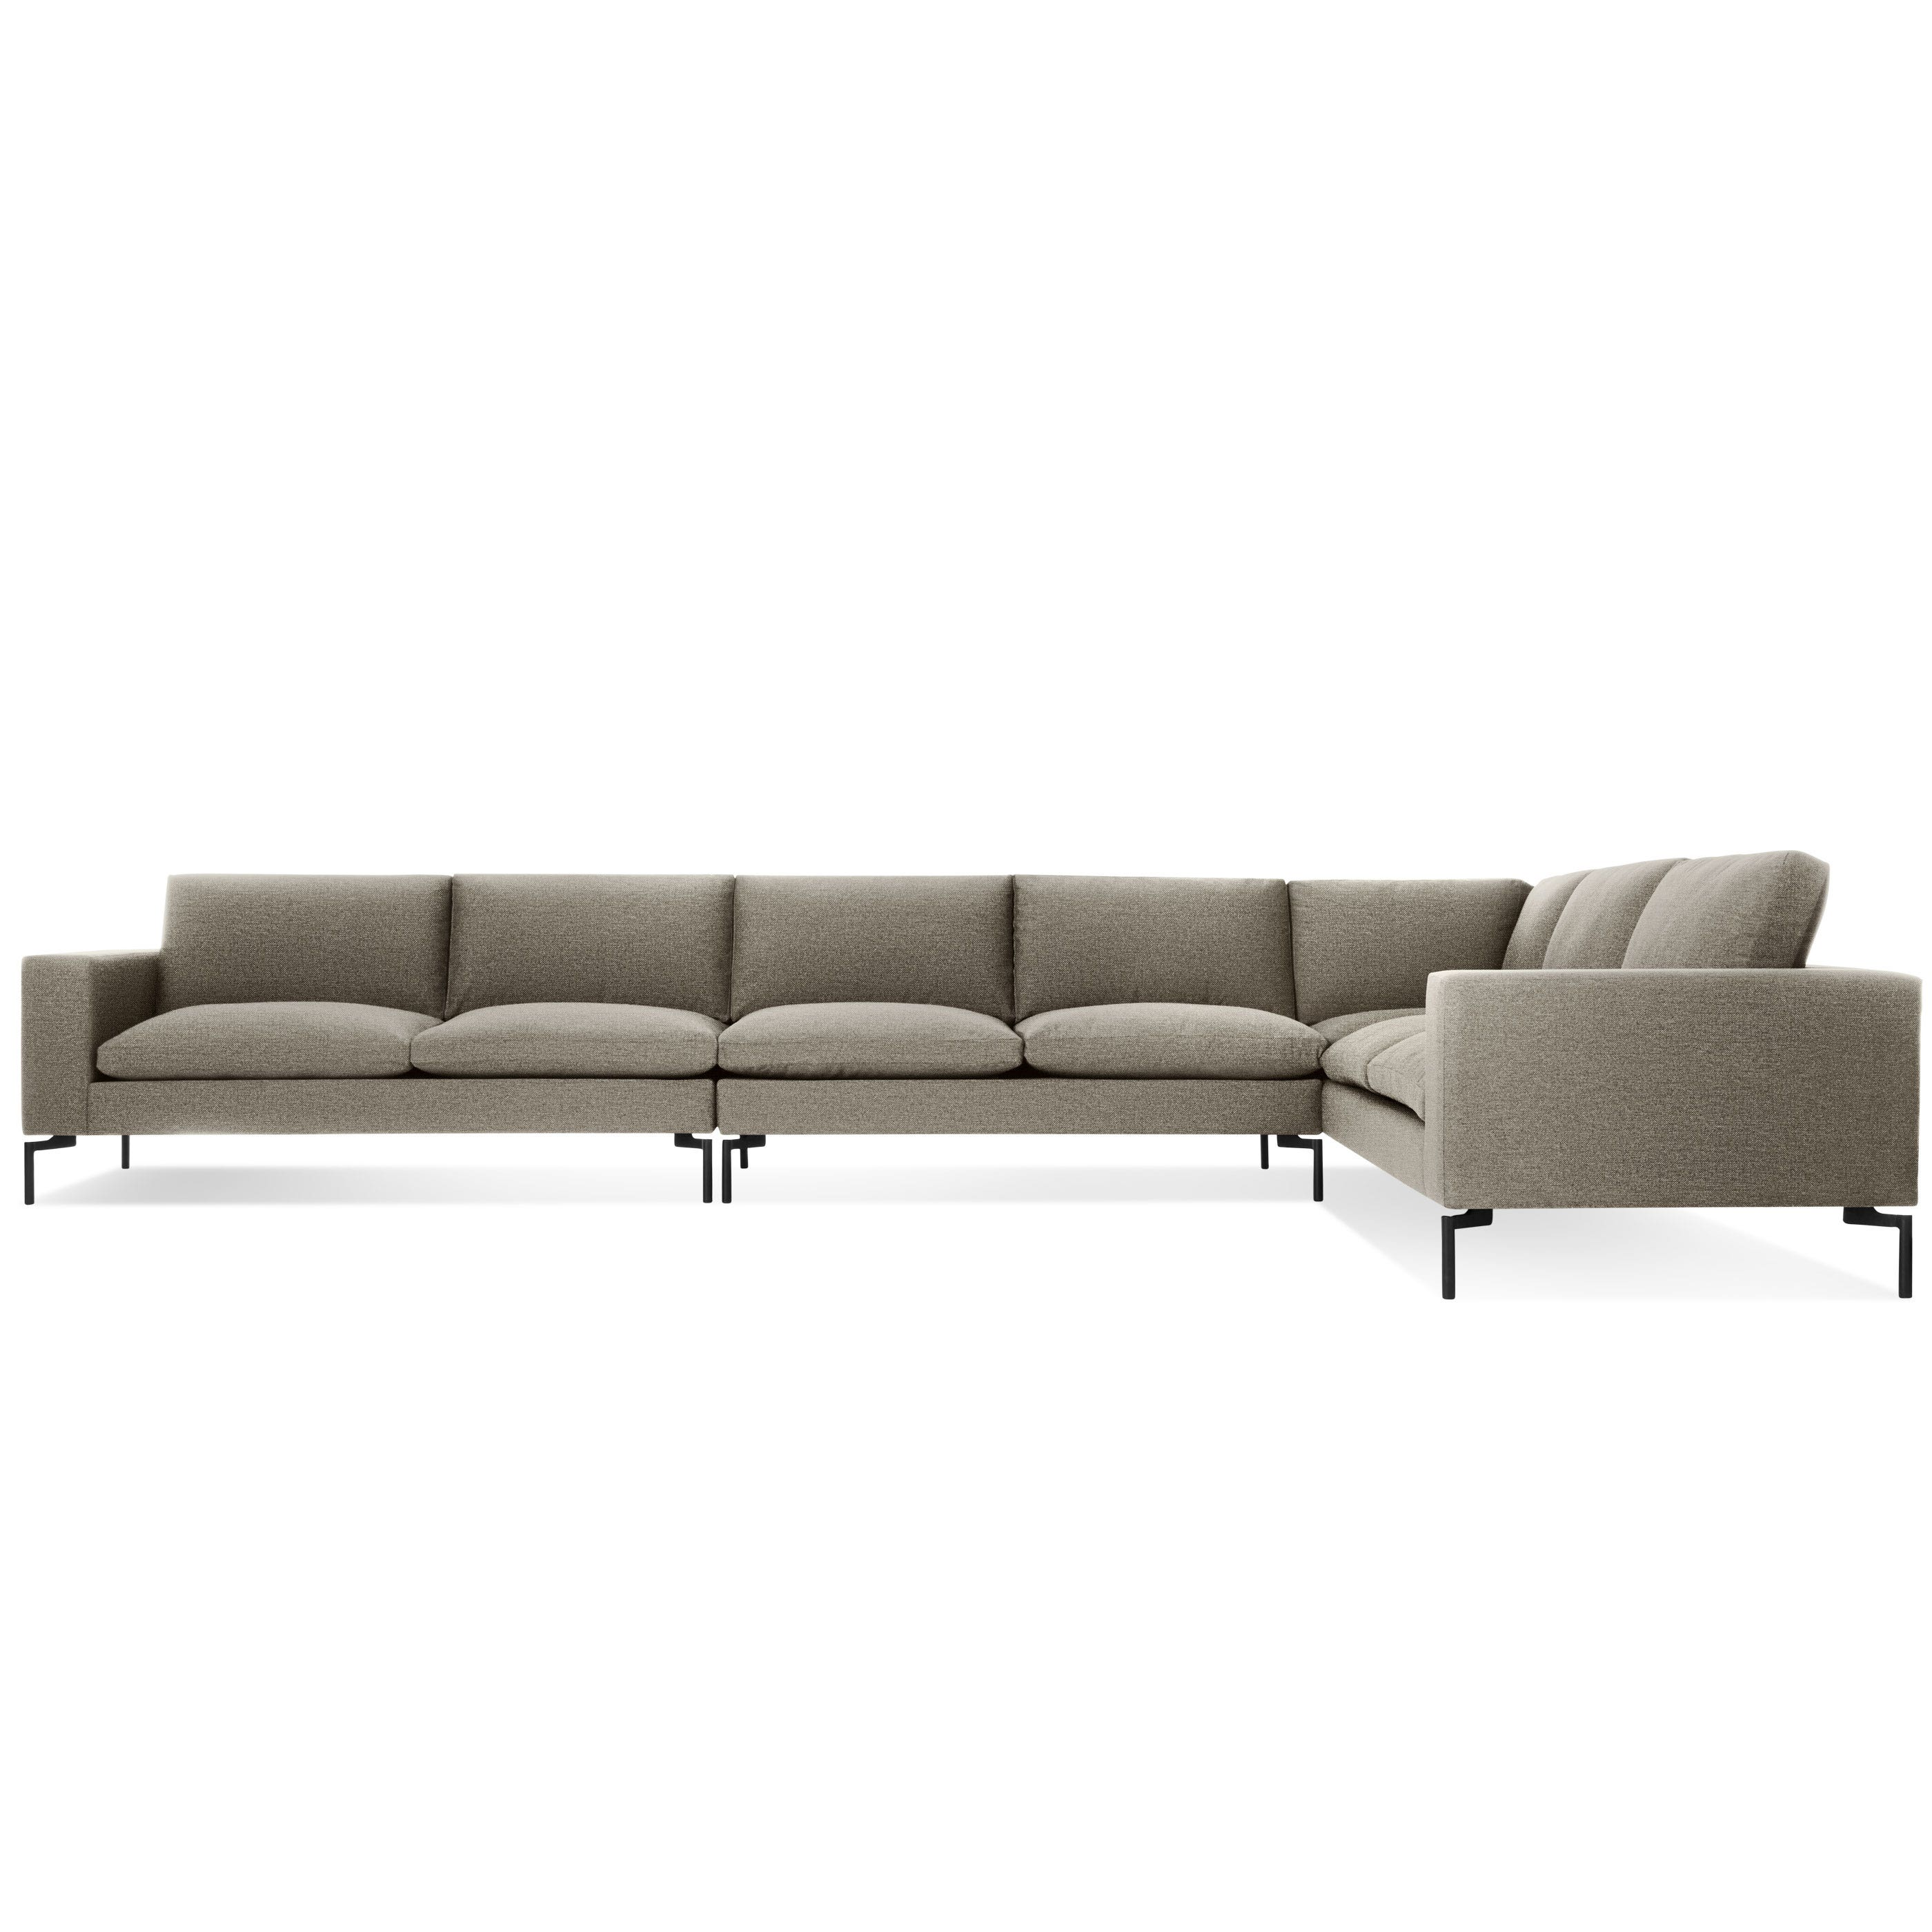 New Standard Fabric Sectional Sofa